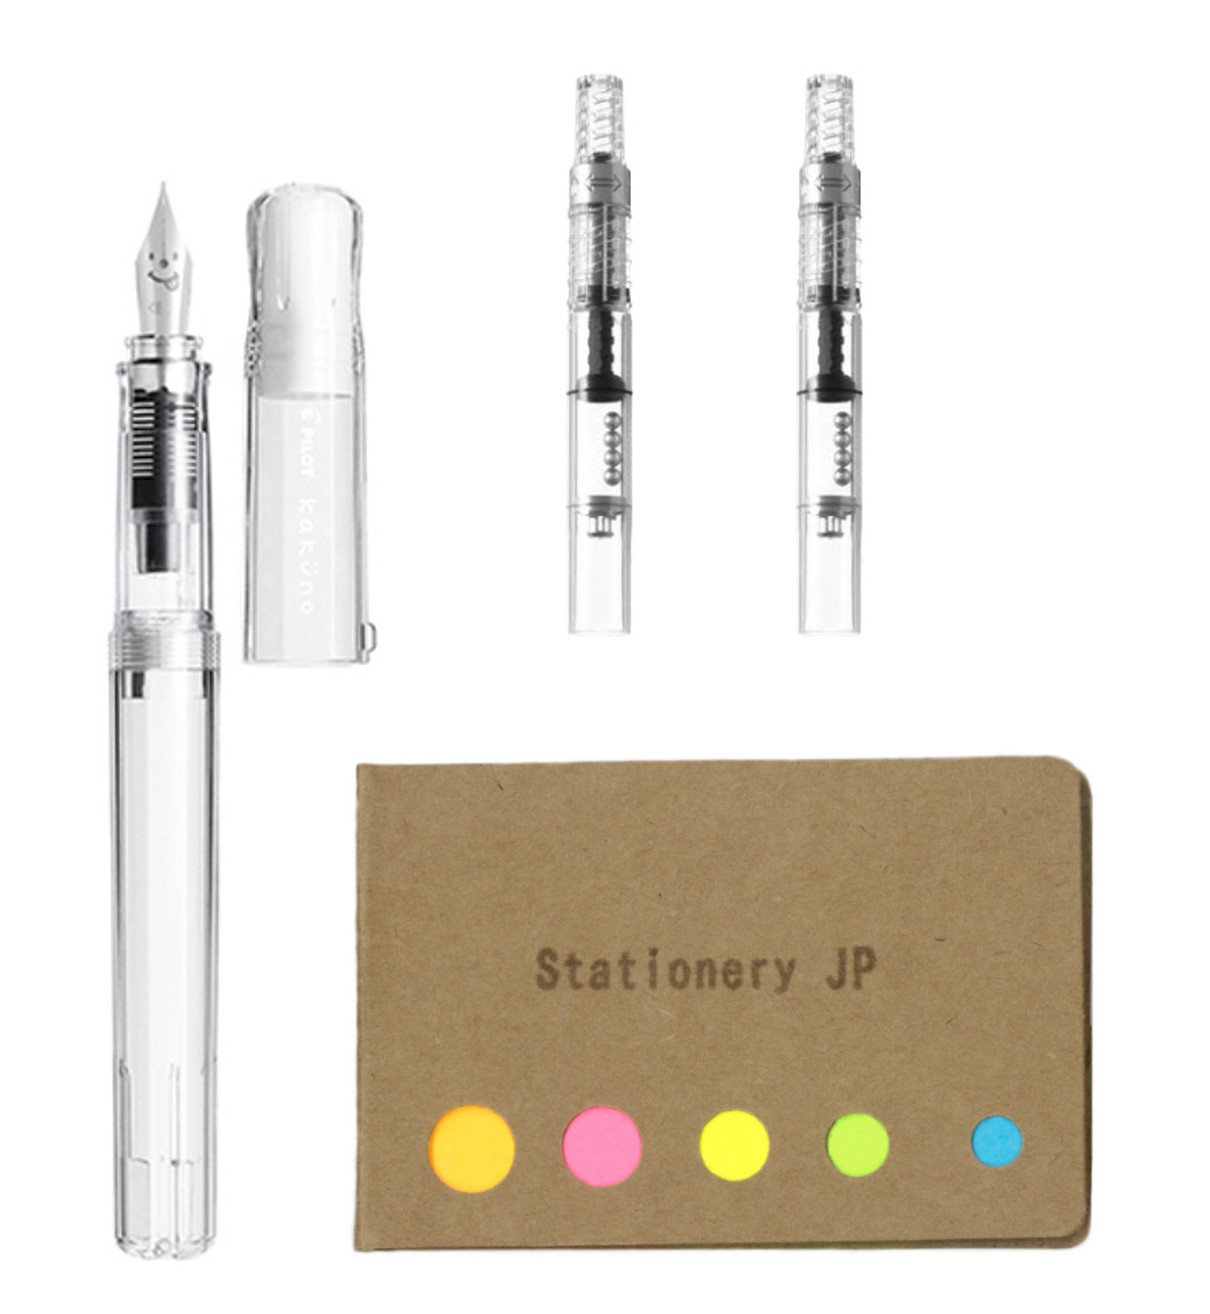 Pilot Kakuno Fountain Pen, Extra Fine Nib, Non Color Body, Pilot Fountain Pen Converter, CON-40, 2-Pieces, Sticky Notes Value Set